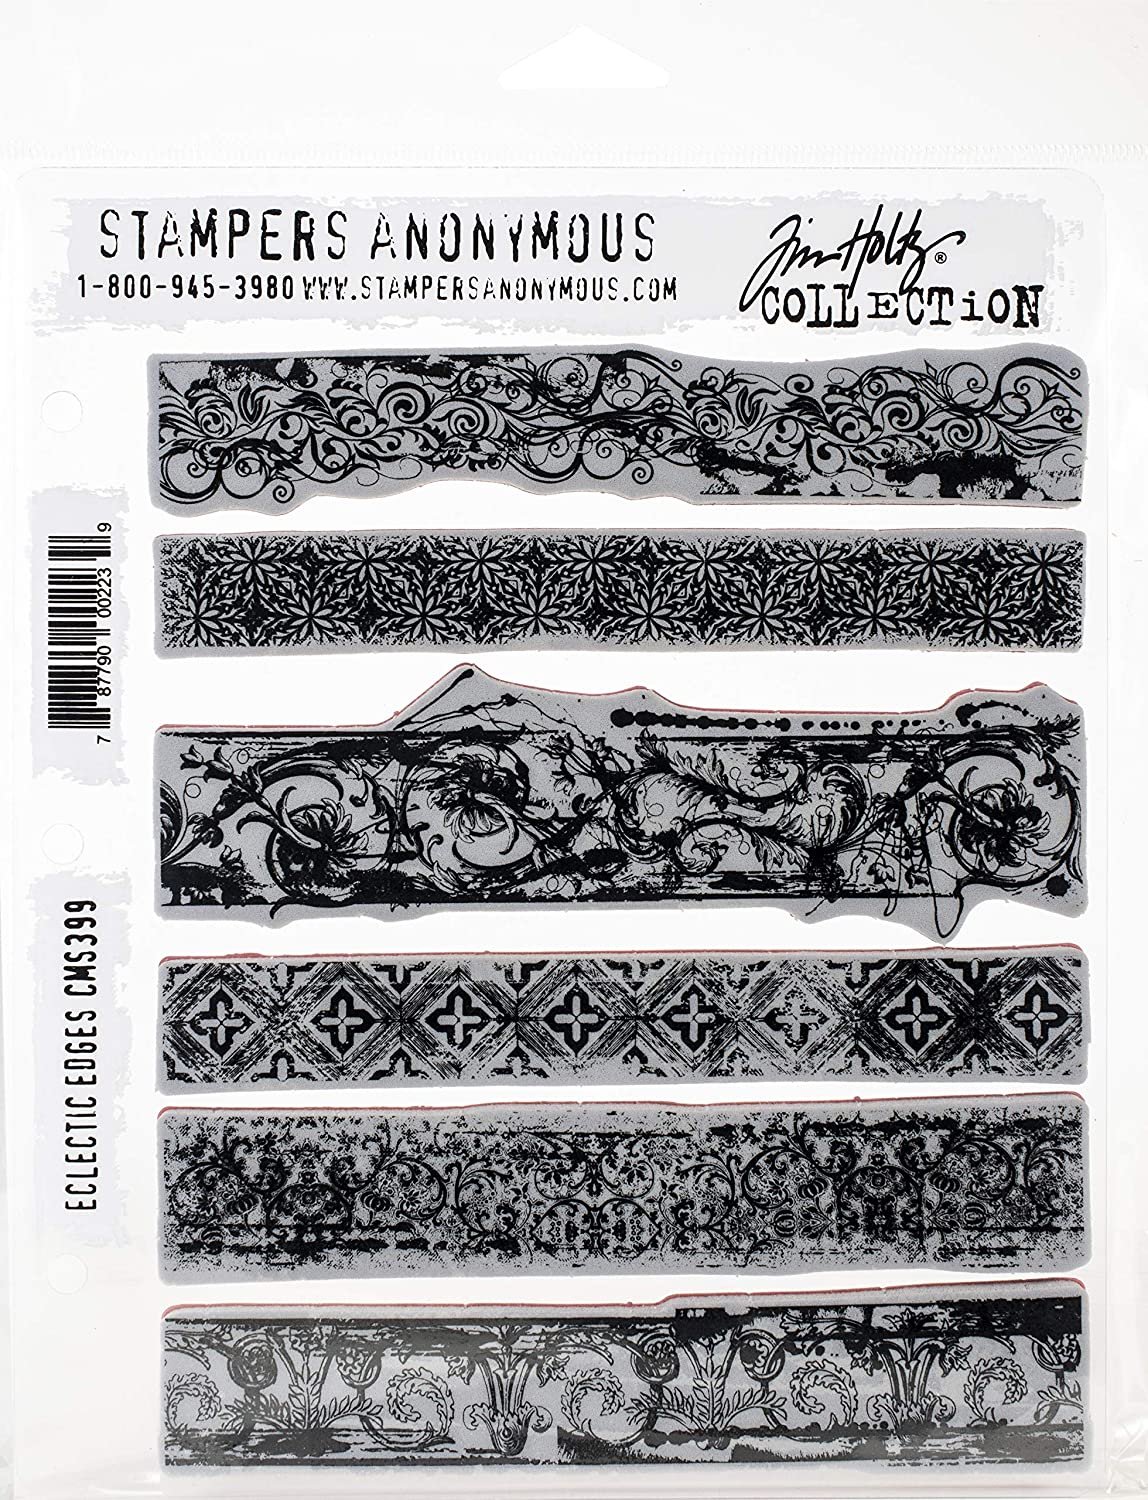 Tim Holtz - Stampers Anon Cling RBBR Stamp Set, Eclectic Edges